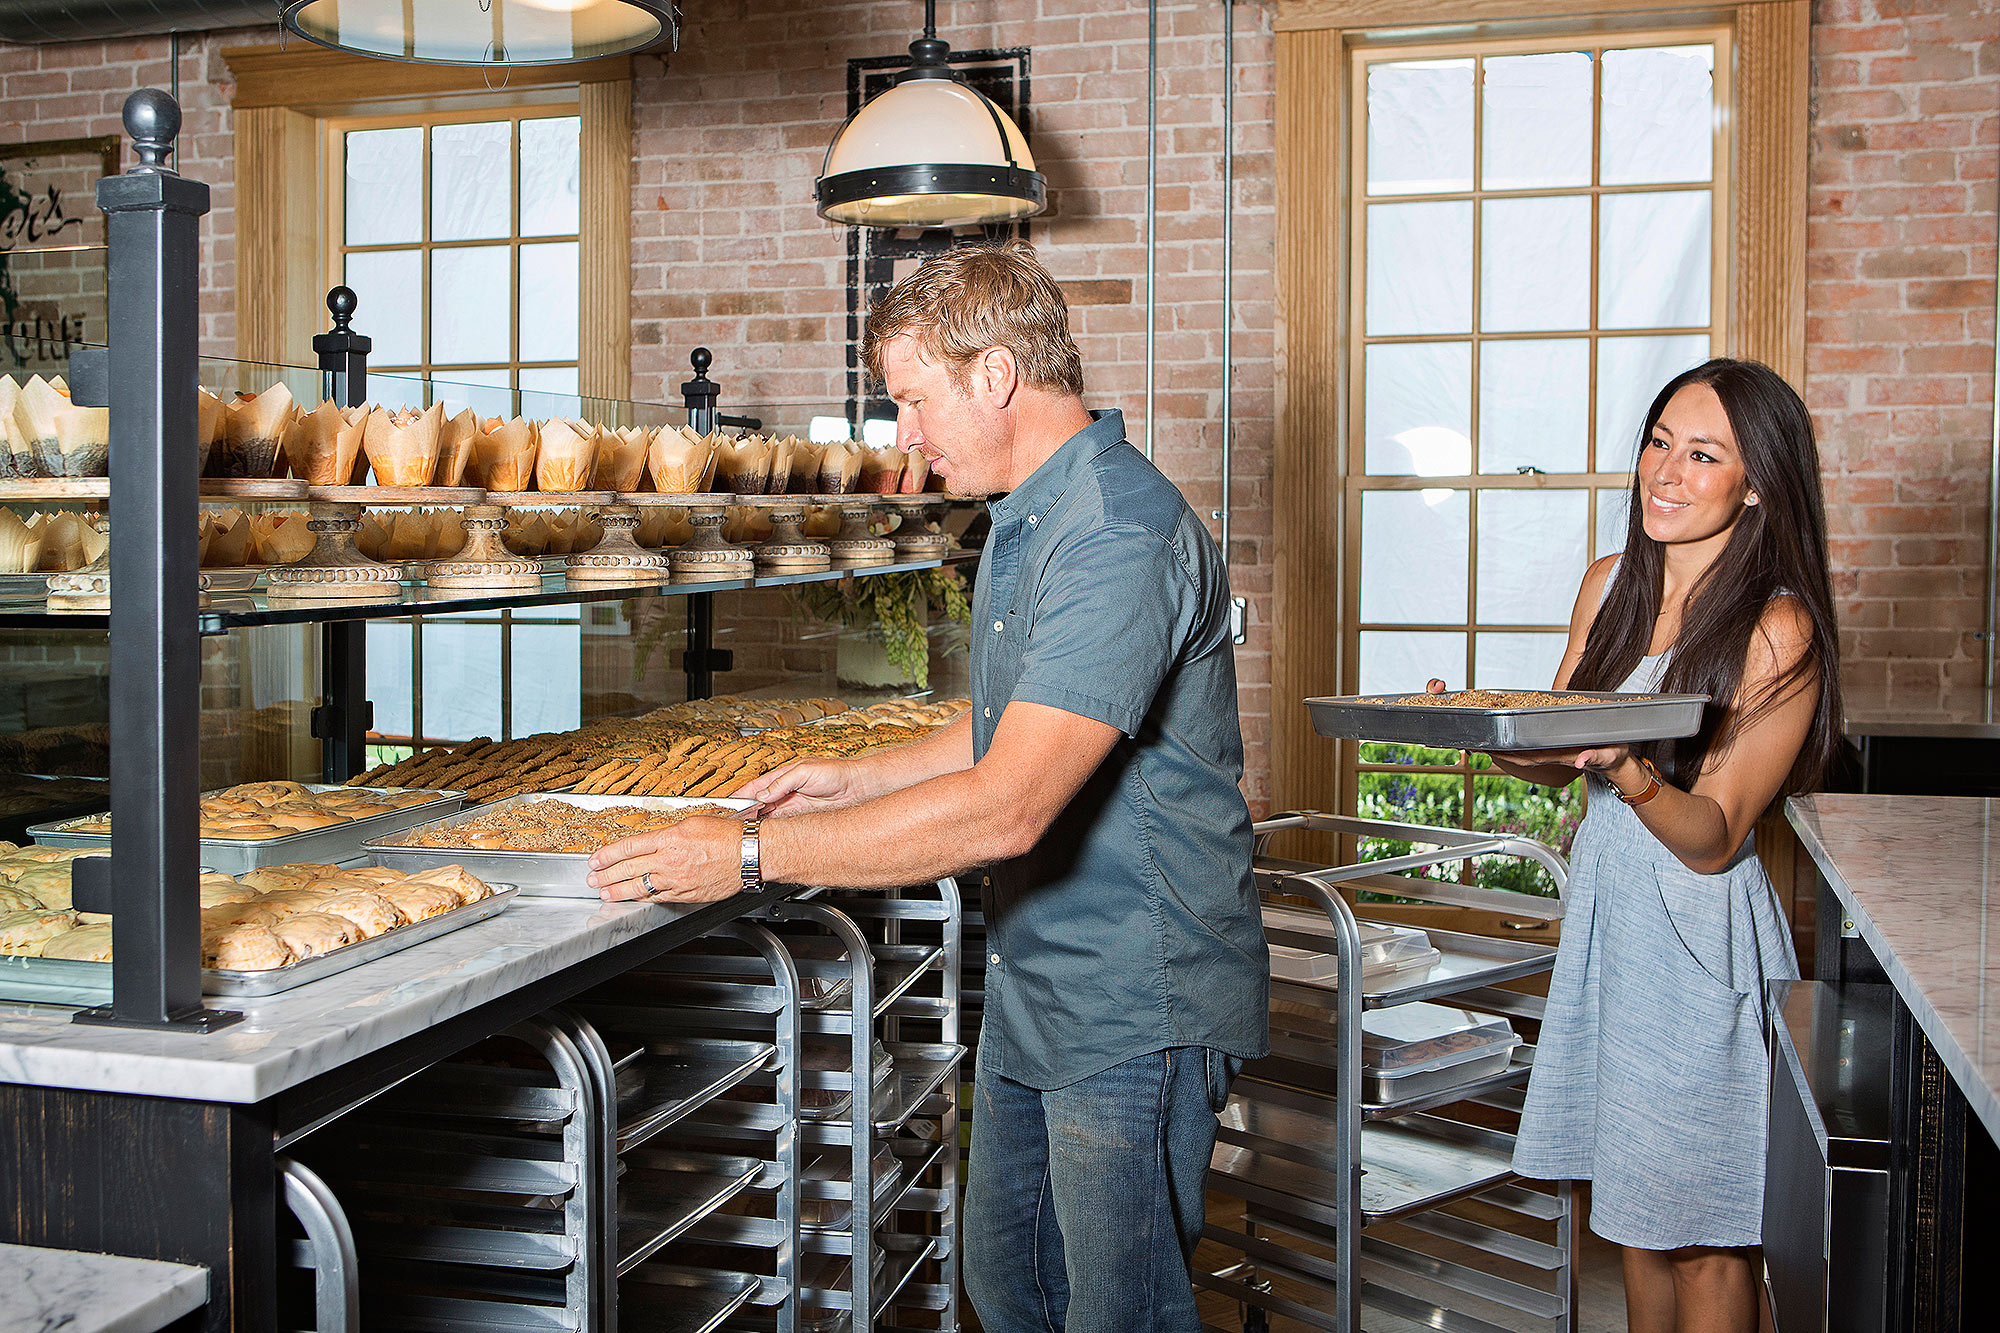 As seen on FIxer Upper, Chip and Joanna Gaines set-up product to be sold in the newly renovated Bakery. (After)